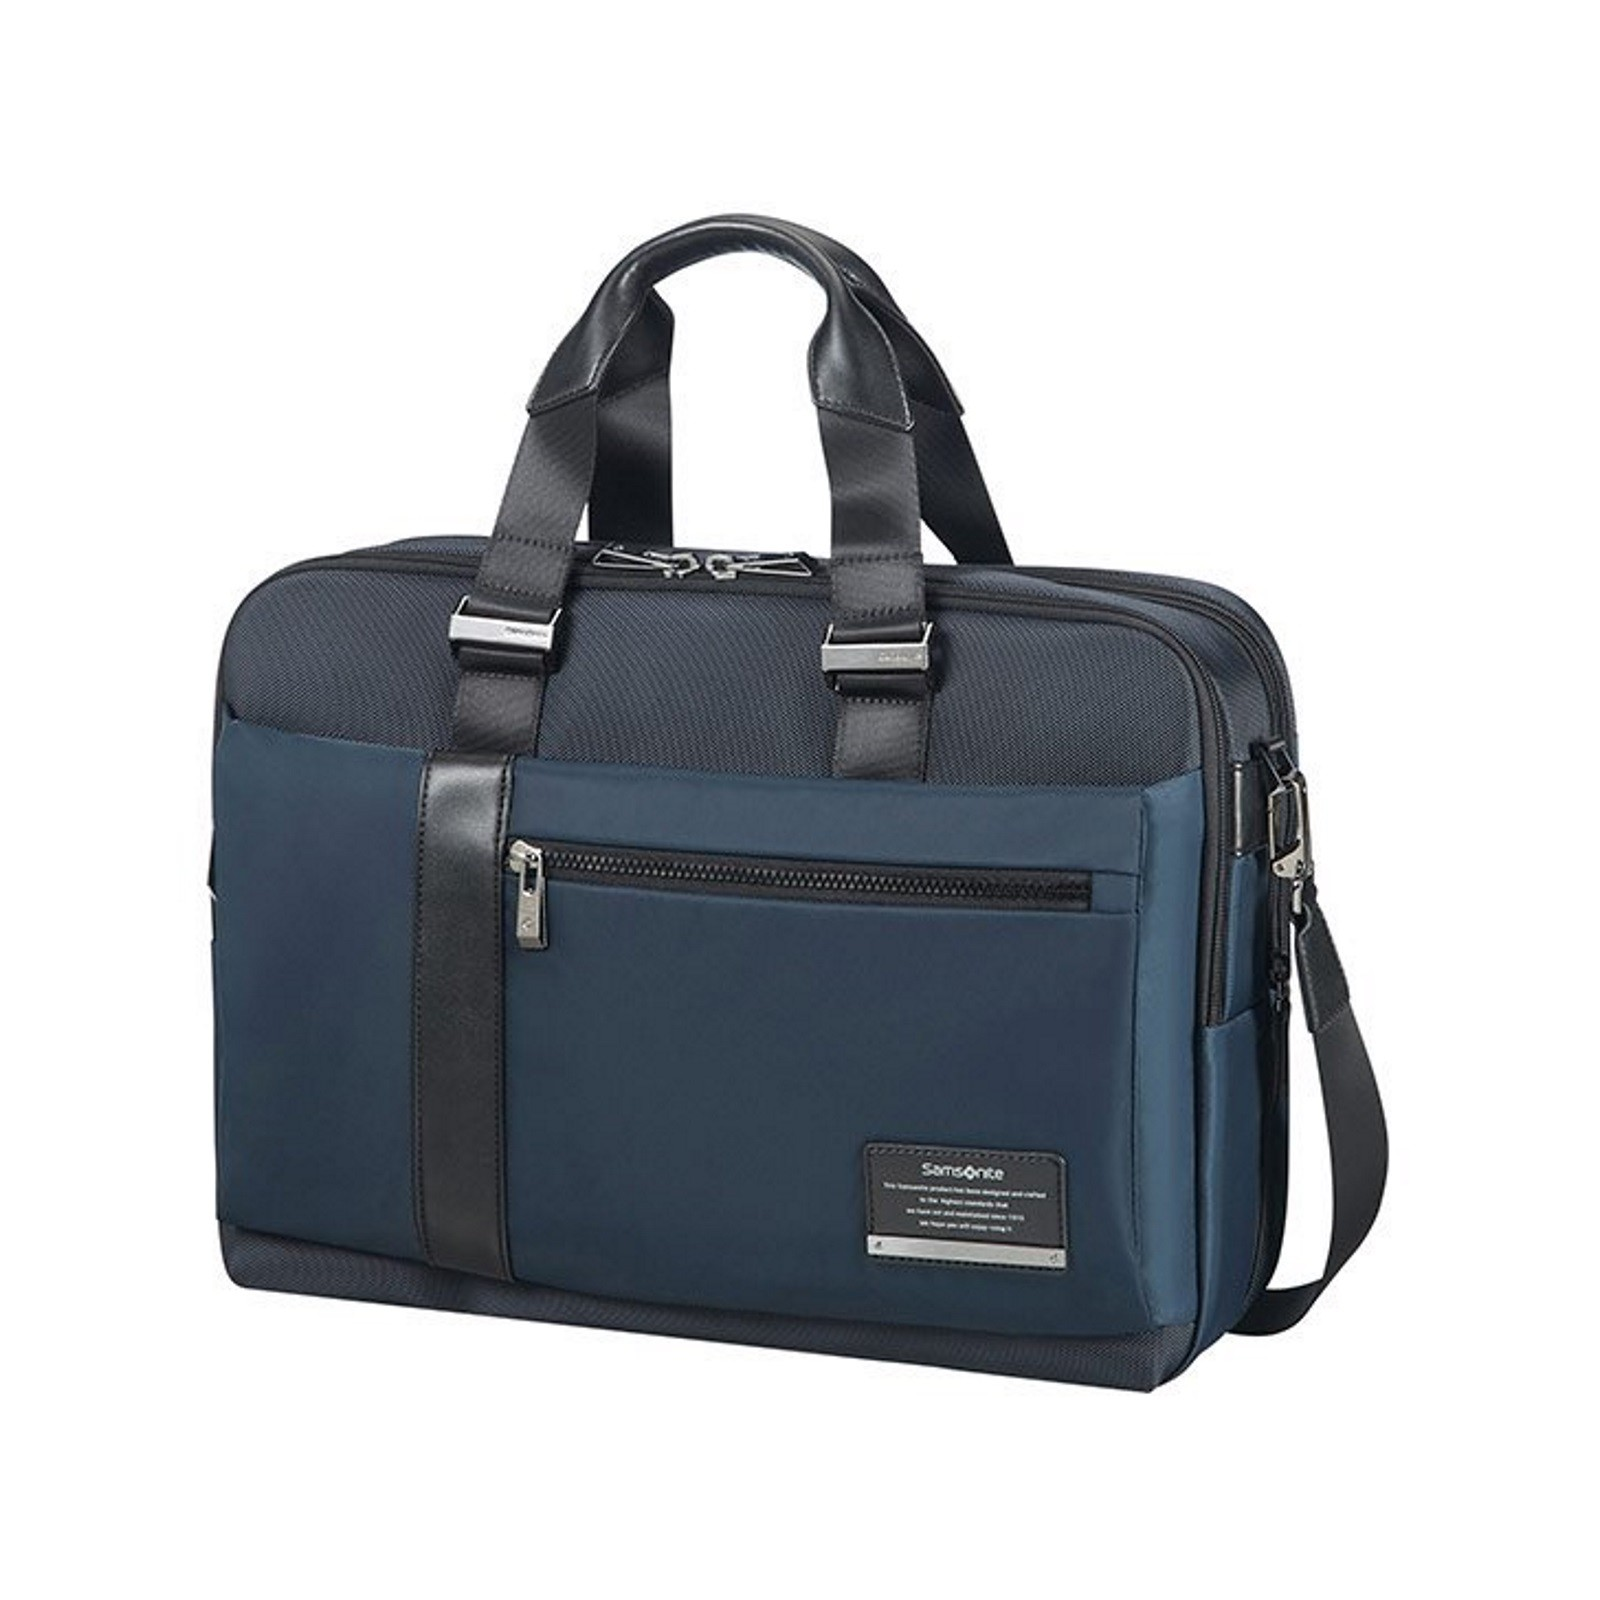 samsonite leather expandable briefcase photo - 1